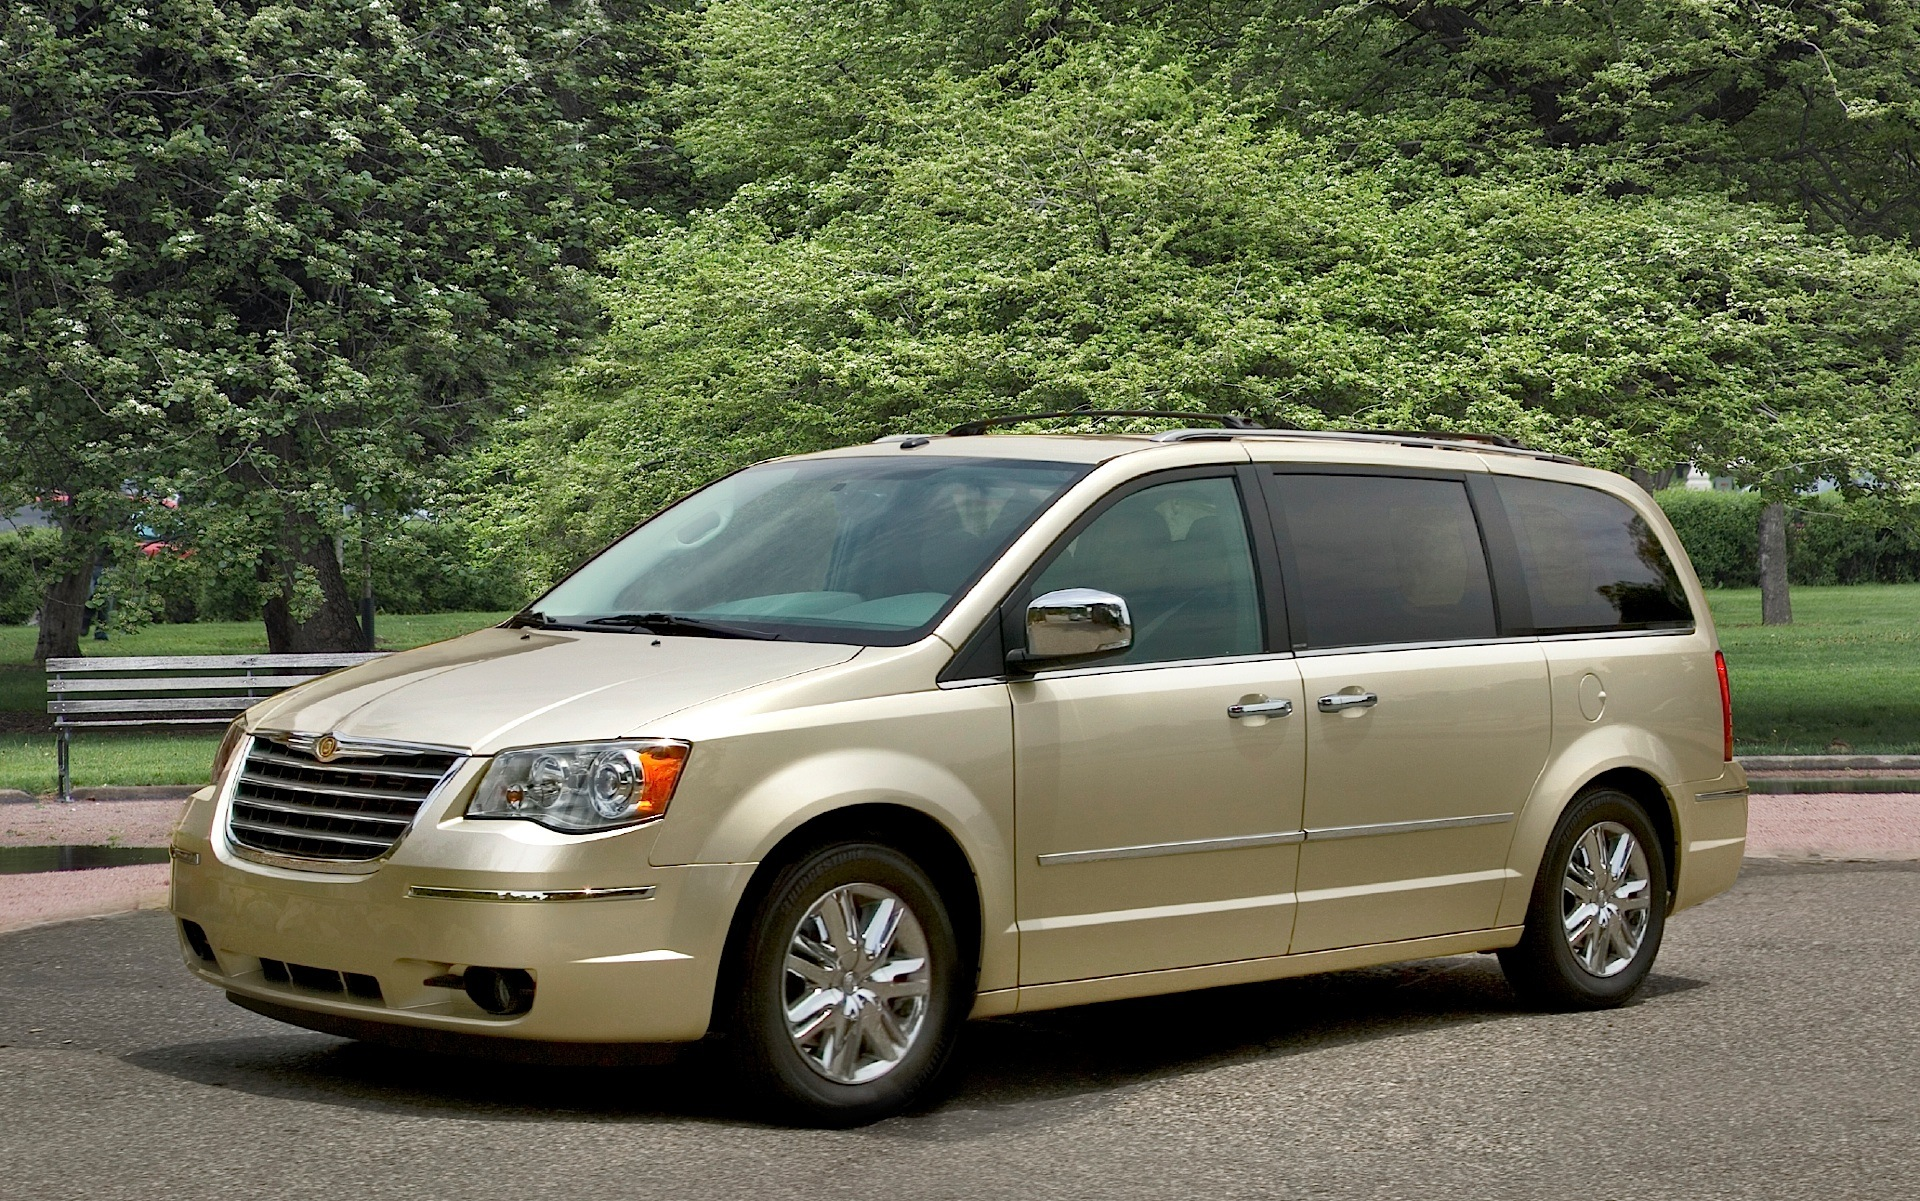 chrysler town country specs 2007 2008 2009 2010 2011 2012 2013 2014 2015 2016. Black Bedroom Furniture Sets. Home Design Ideas